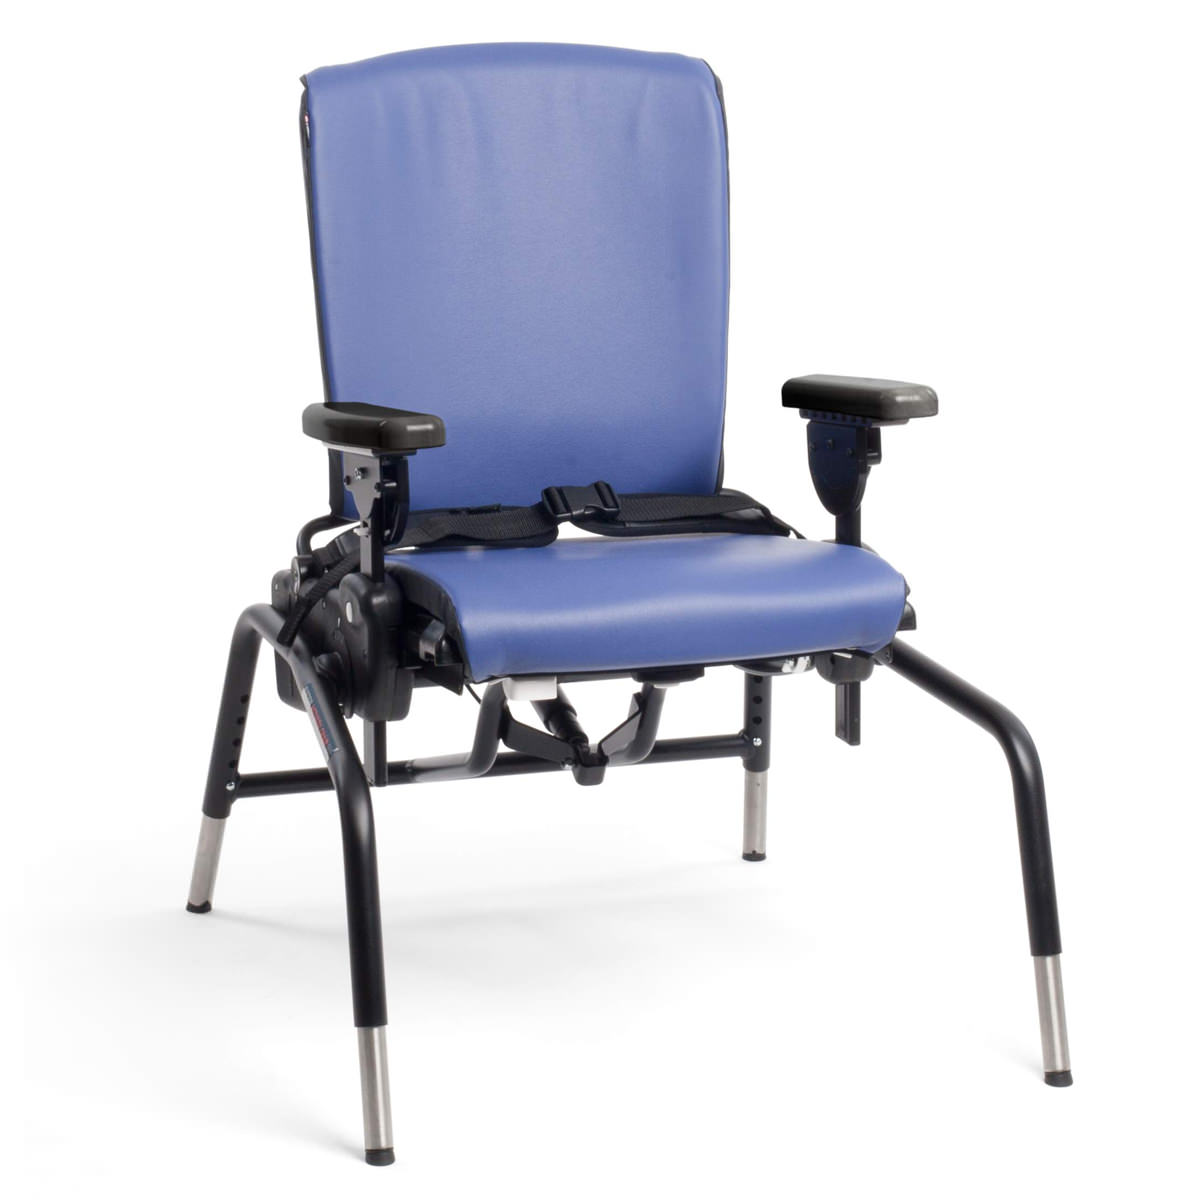 Rifton activity chair with standard base - Large